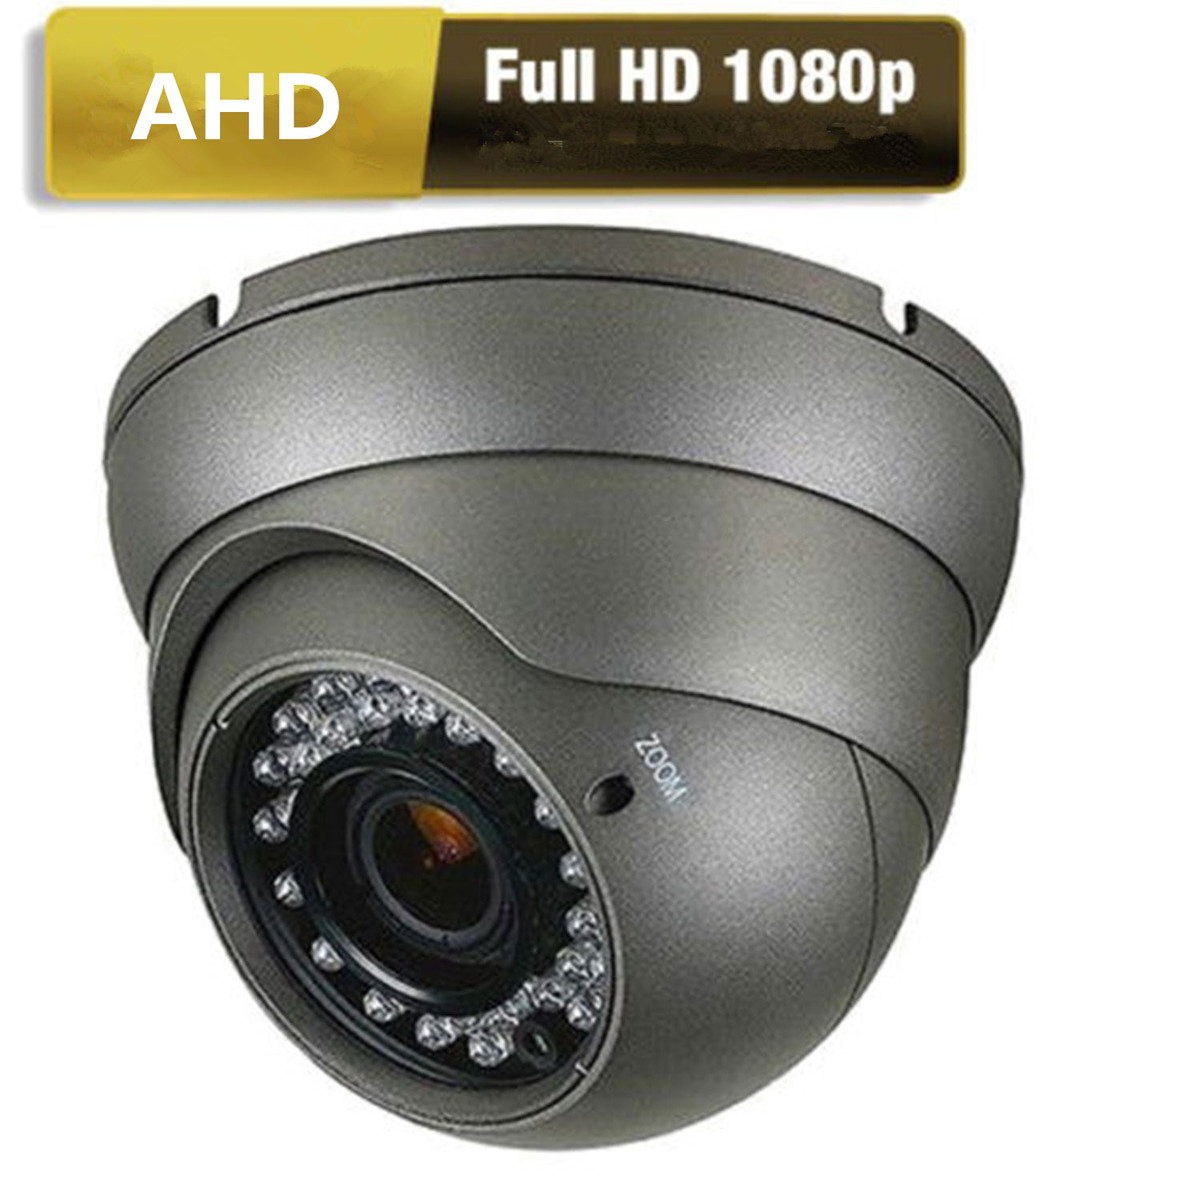 HD 2.0MP 1080P Dome Security Camera Day Night Vision 24 IR Leds Waterproof Outdoor/Indoor Wide Angle 3.6mm Lens For CCTV System drop shipping gift boys girls students time clock electronic digital lcd wrist sport watch july12